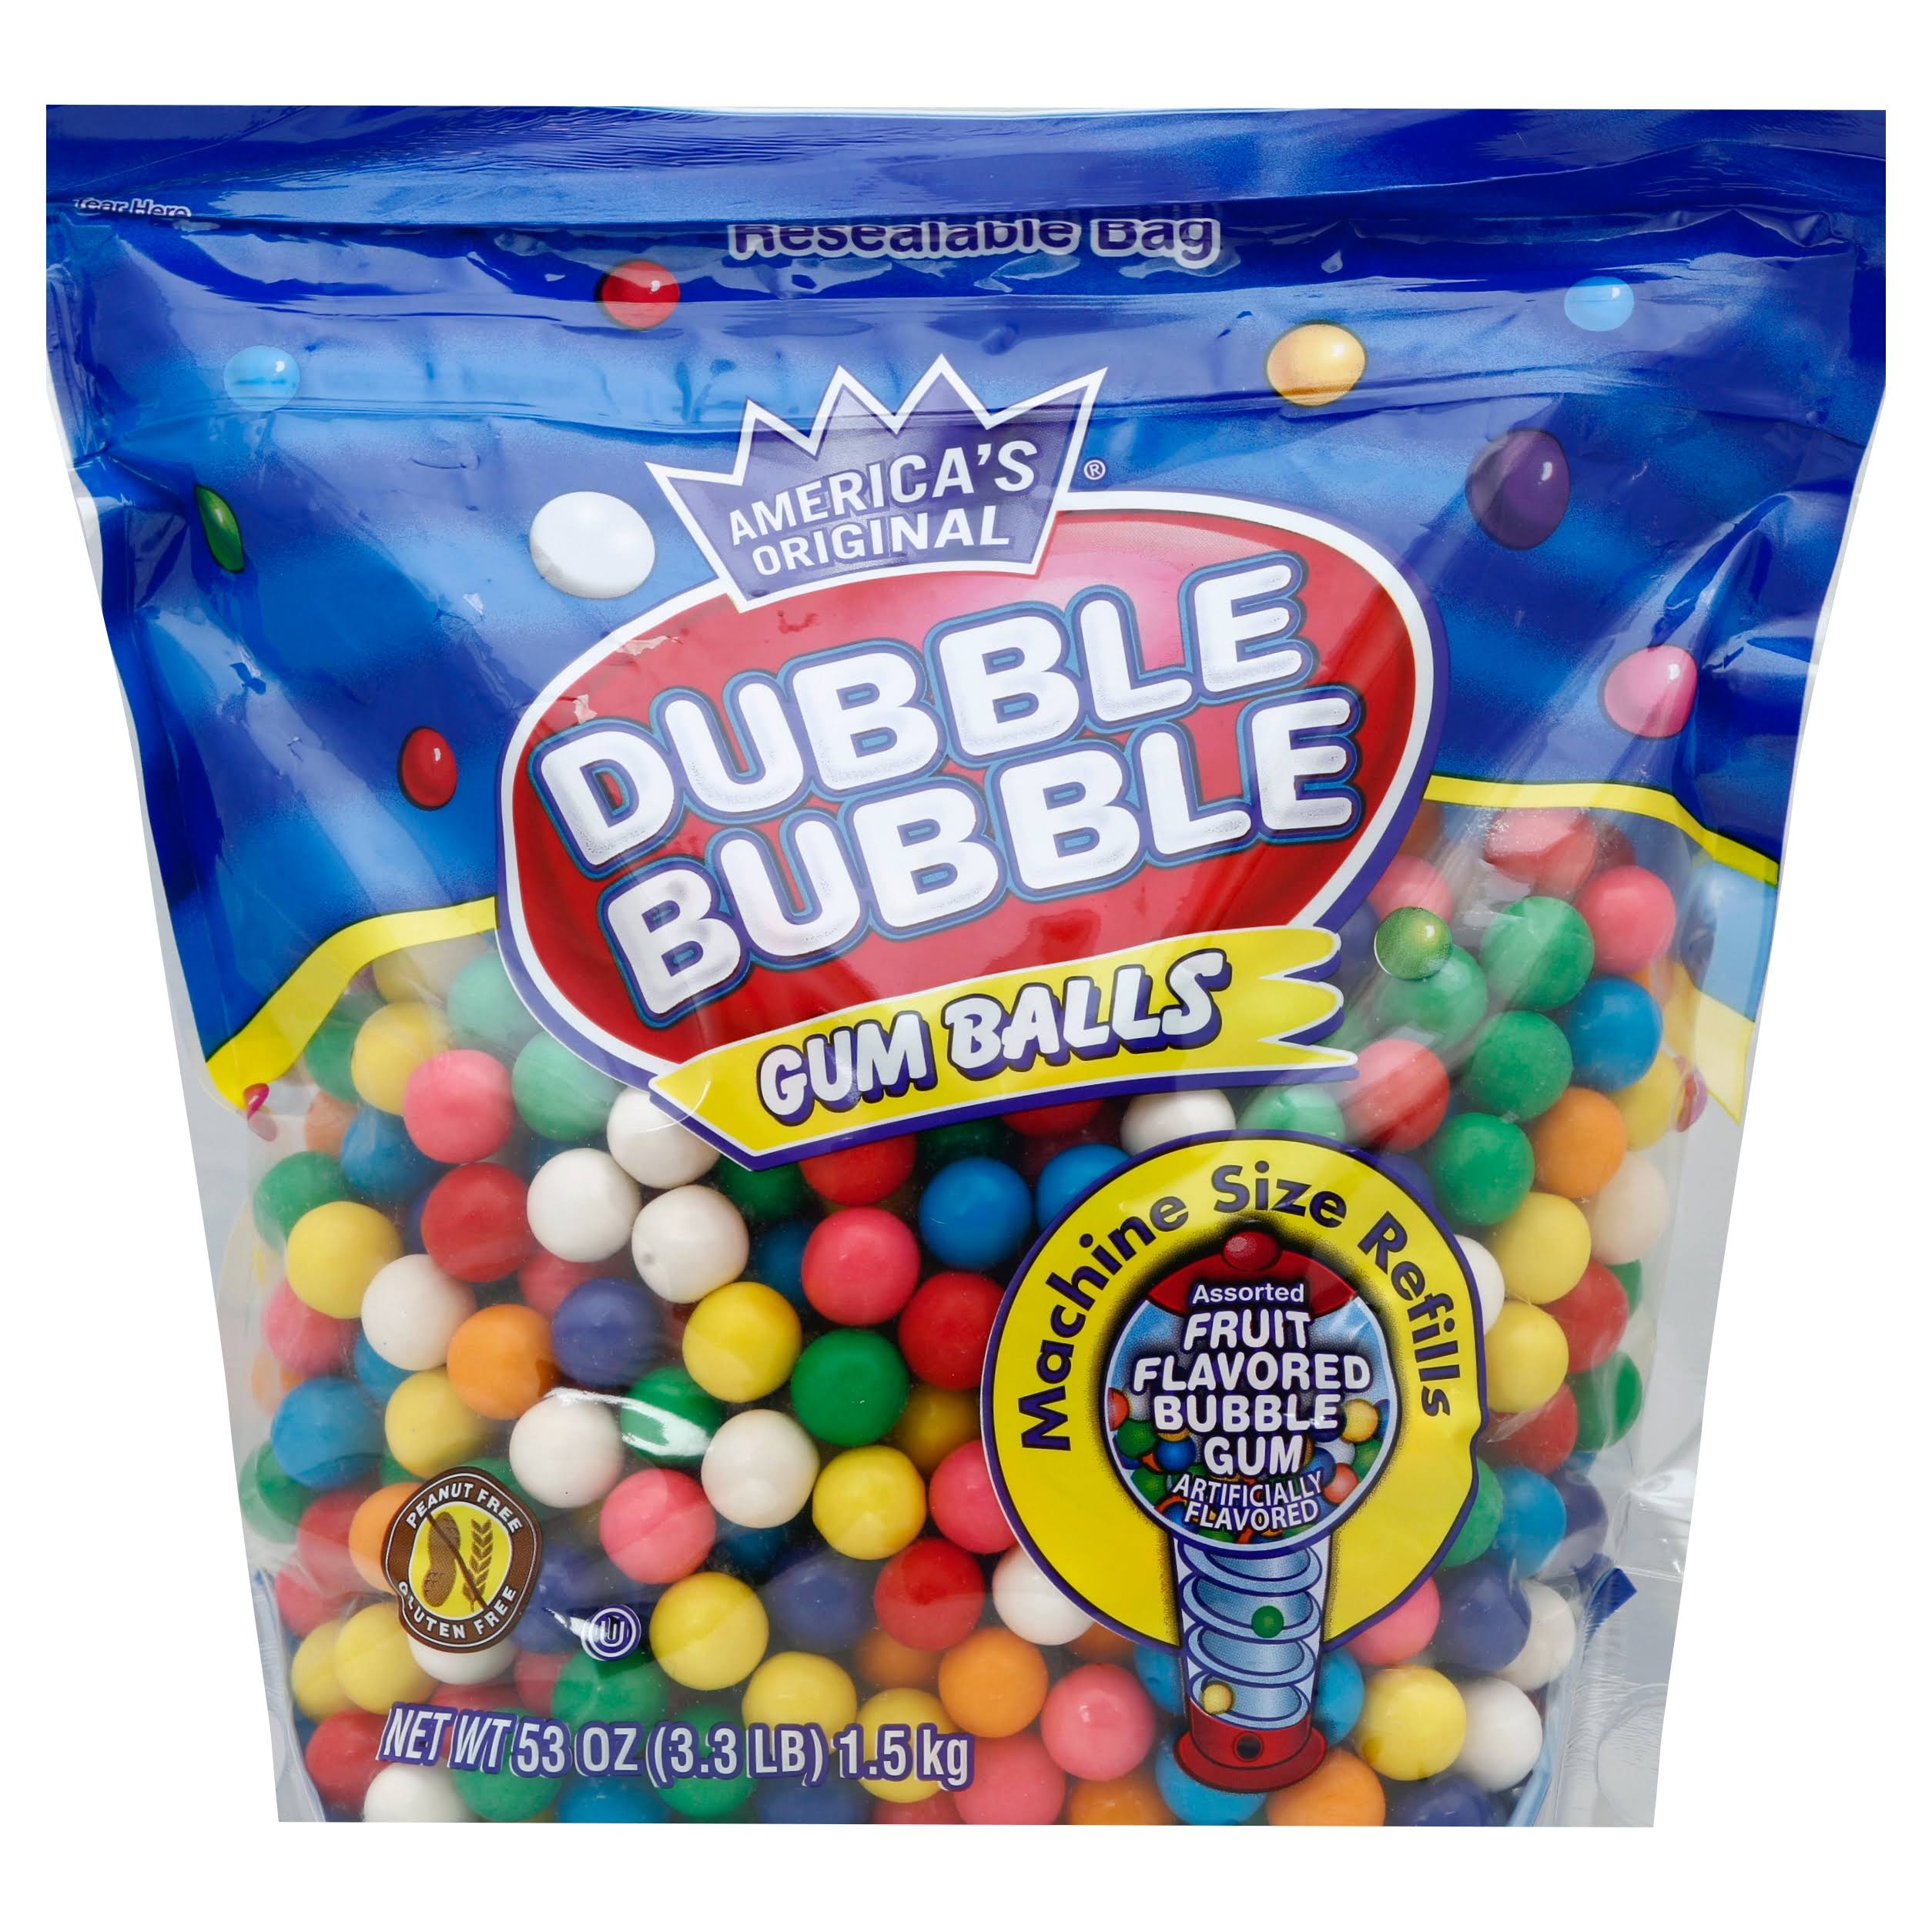 Dubble Bubble Gum Balls Resealable Bag - Assorted Flavors, 53oz